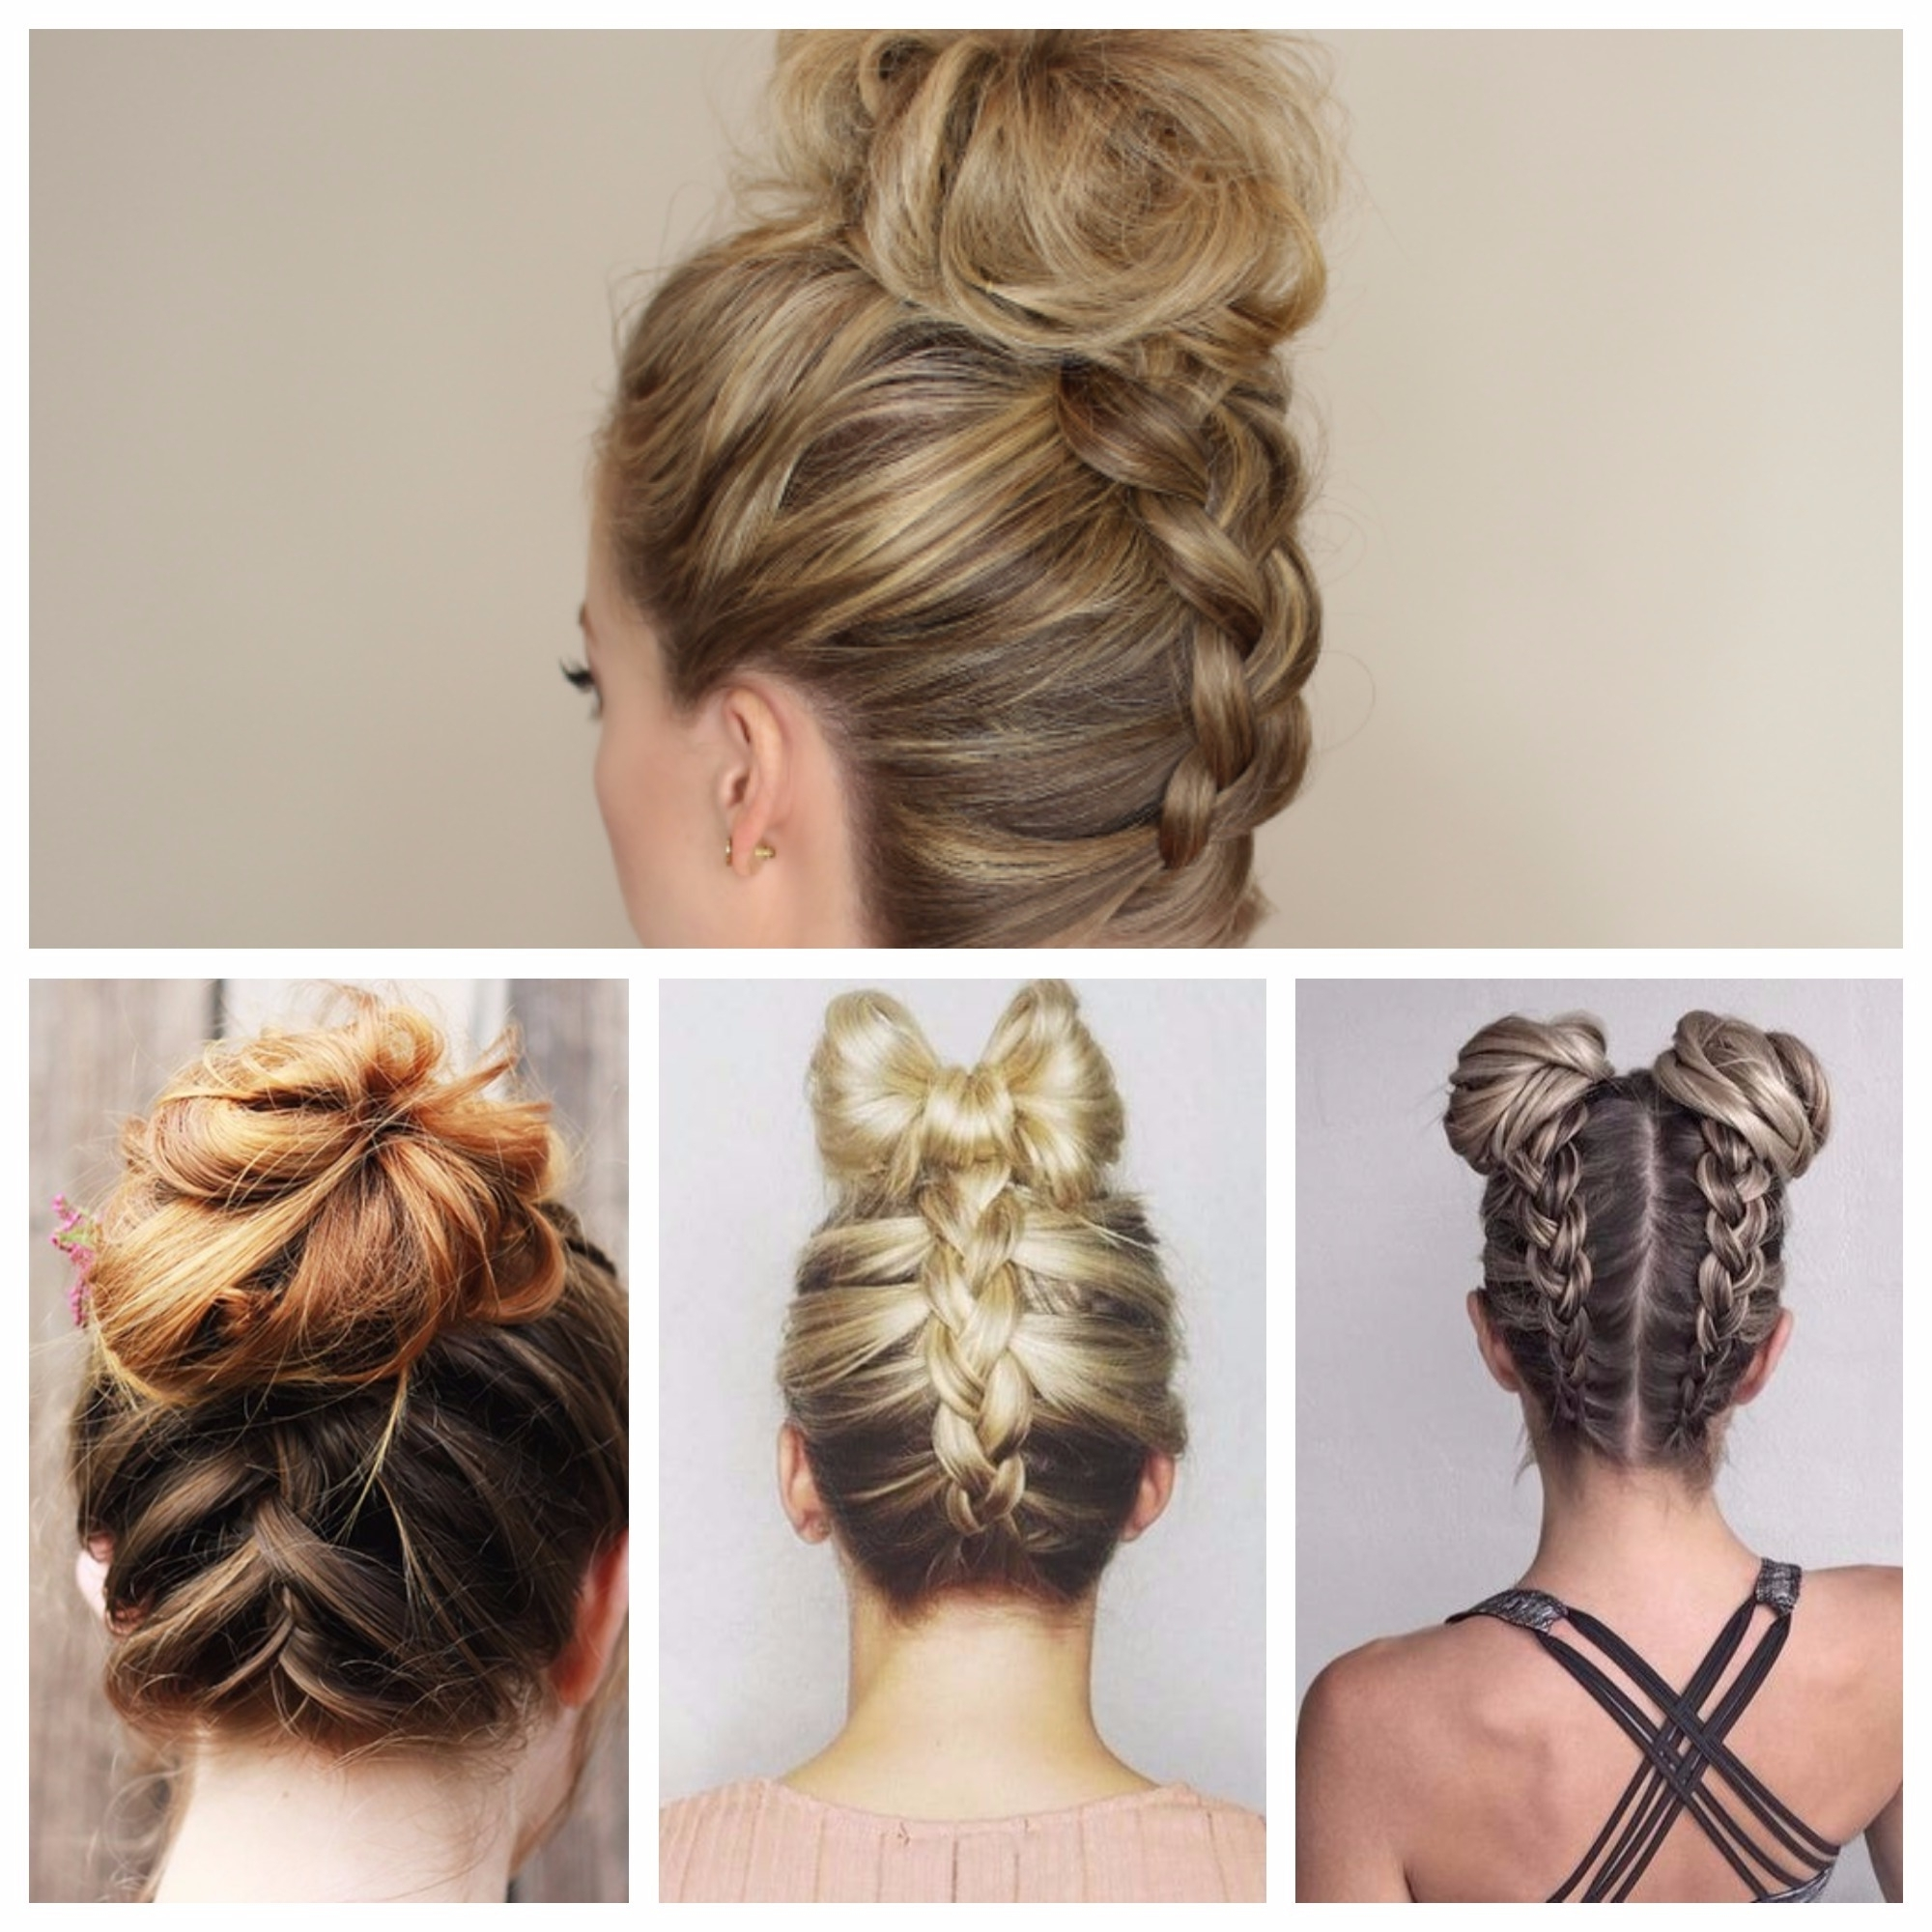 Upside Down French Braid Hairstyles For 2018 – New Hairstyles 2017 Regarding Well Liked French Braid Updo Hairstyles (Gallery 7 of 15)